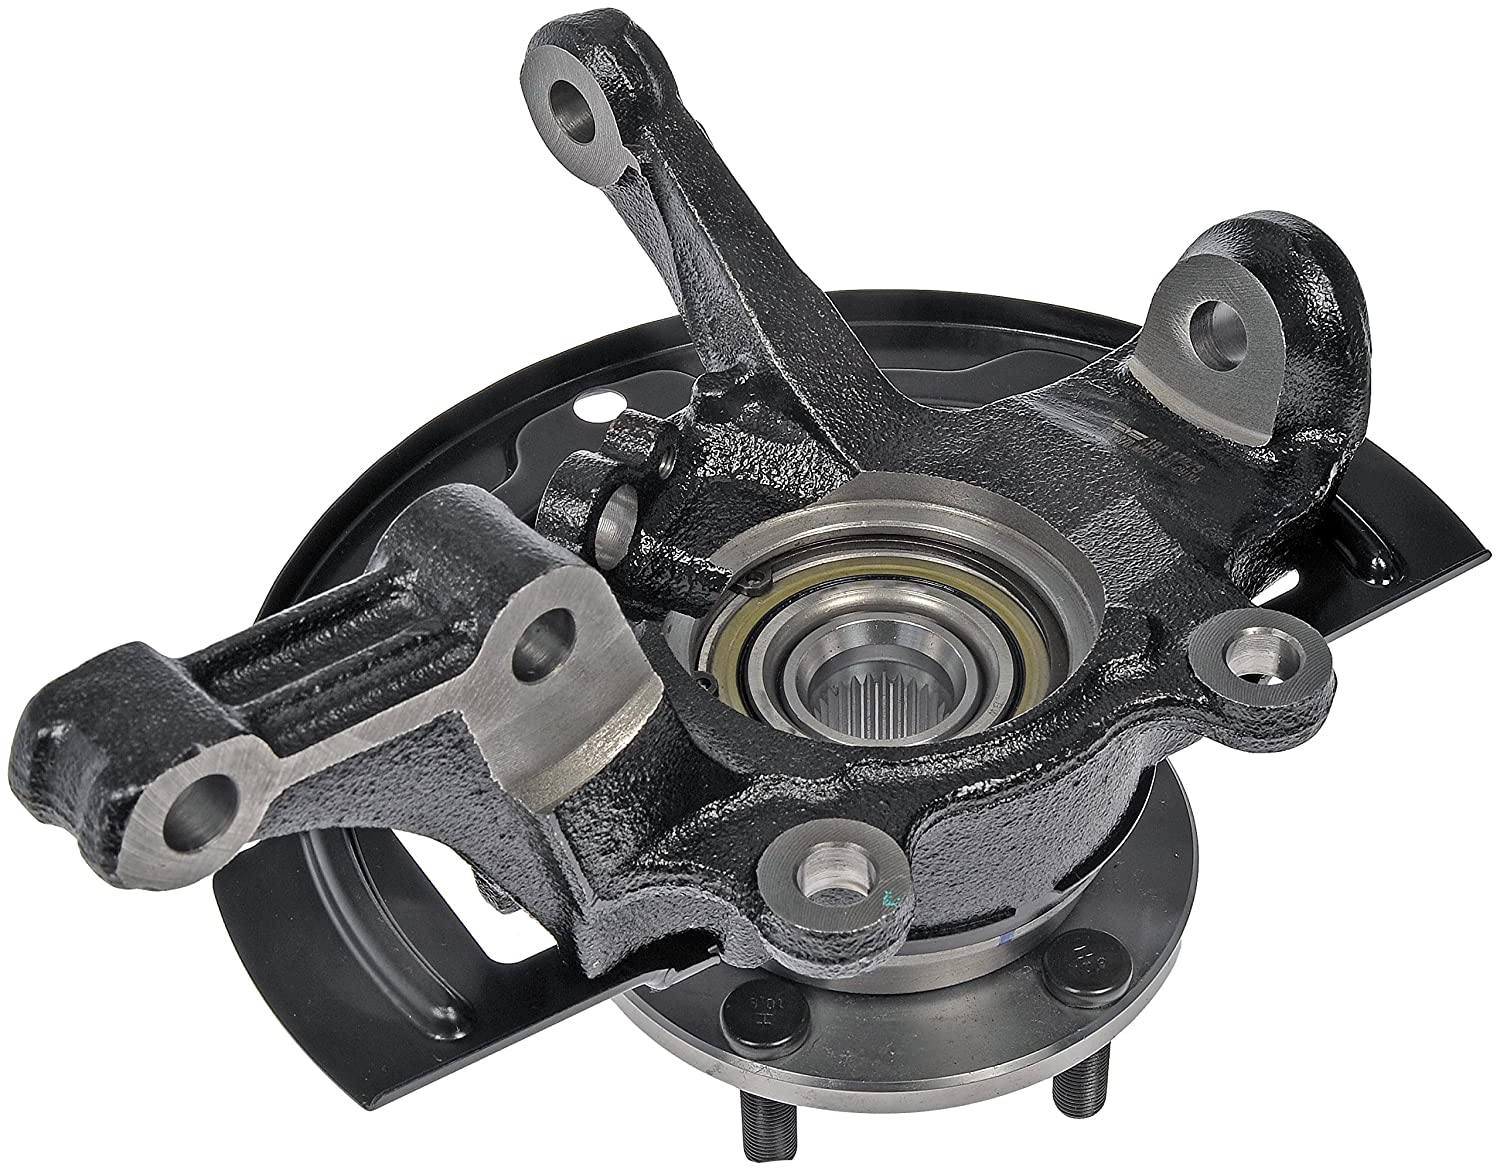 Dorman 698-378 Front Right Loaded Knuckle for the Nissan Altima